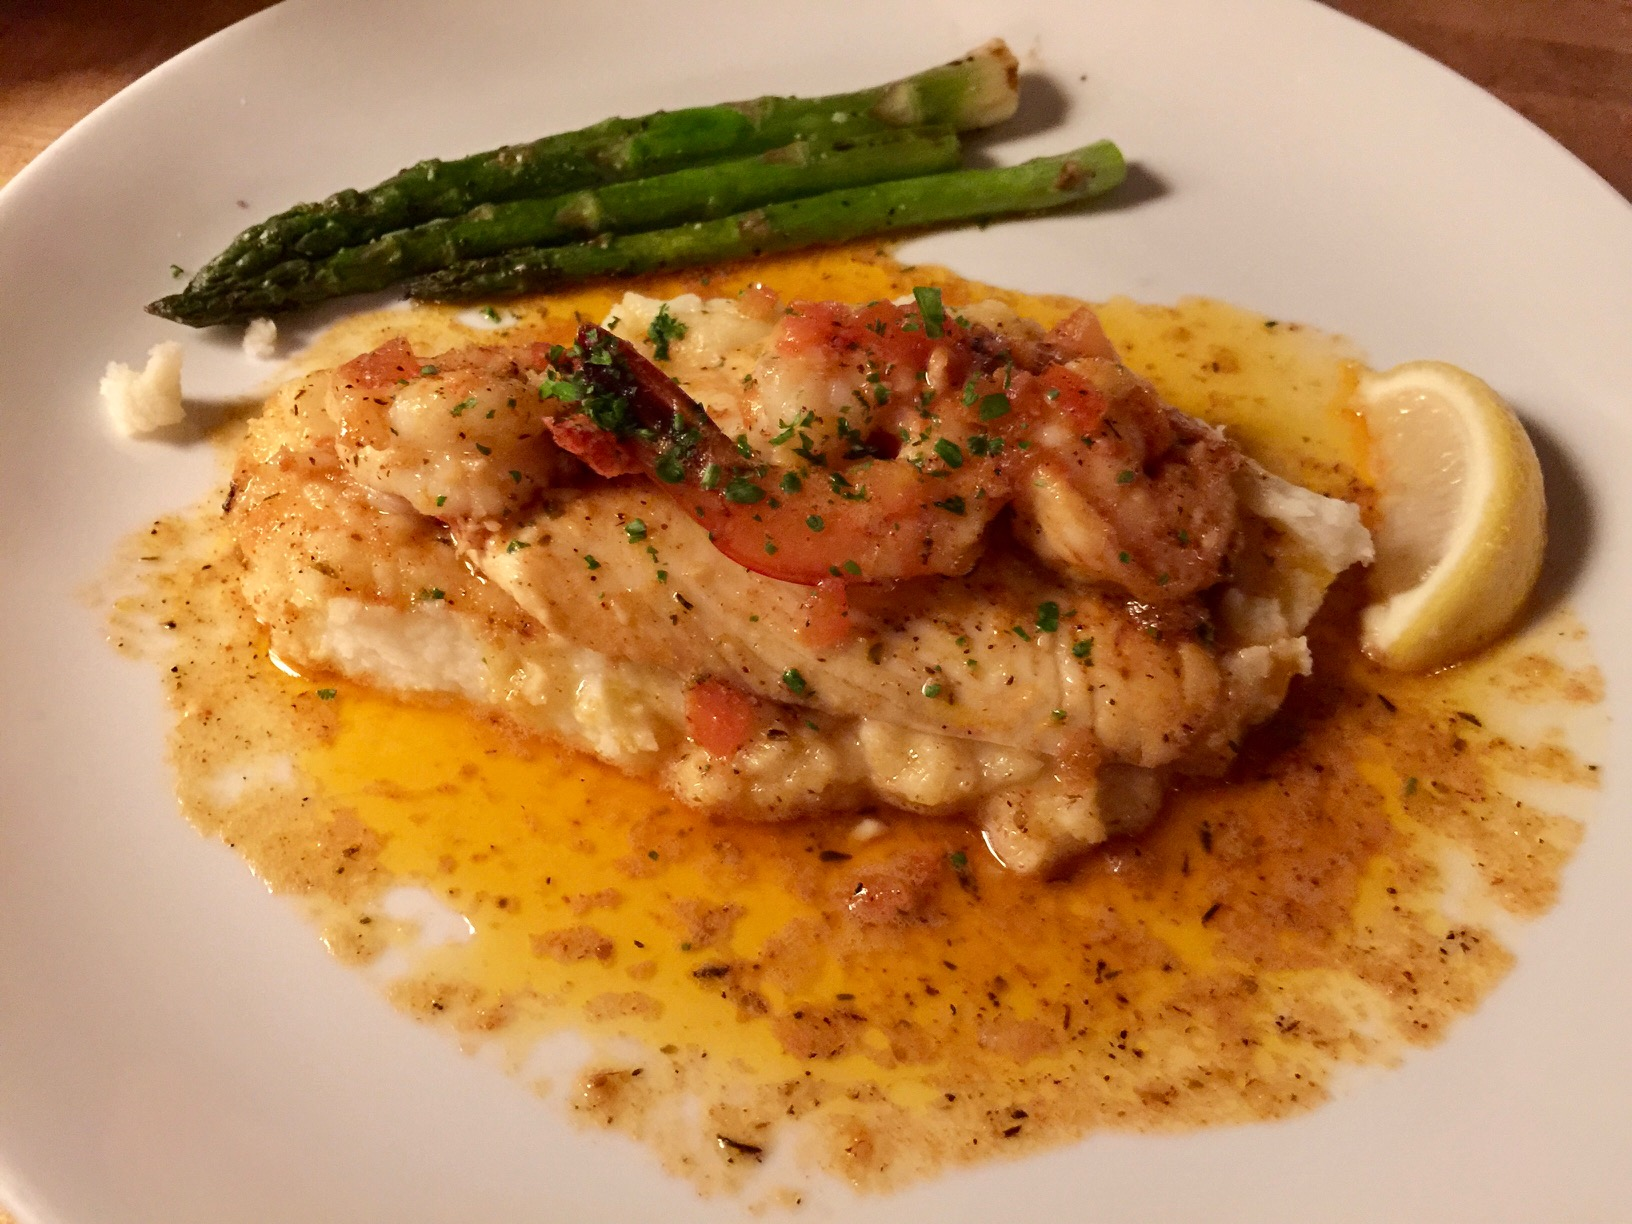 Cajun Cod and Shrimp with Mashed Potatoes